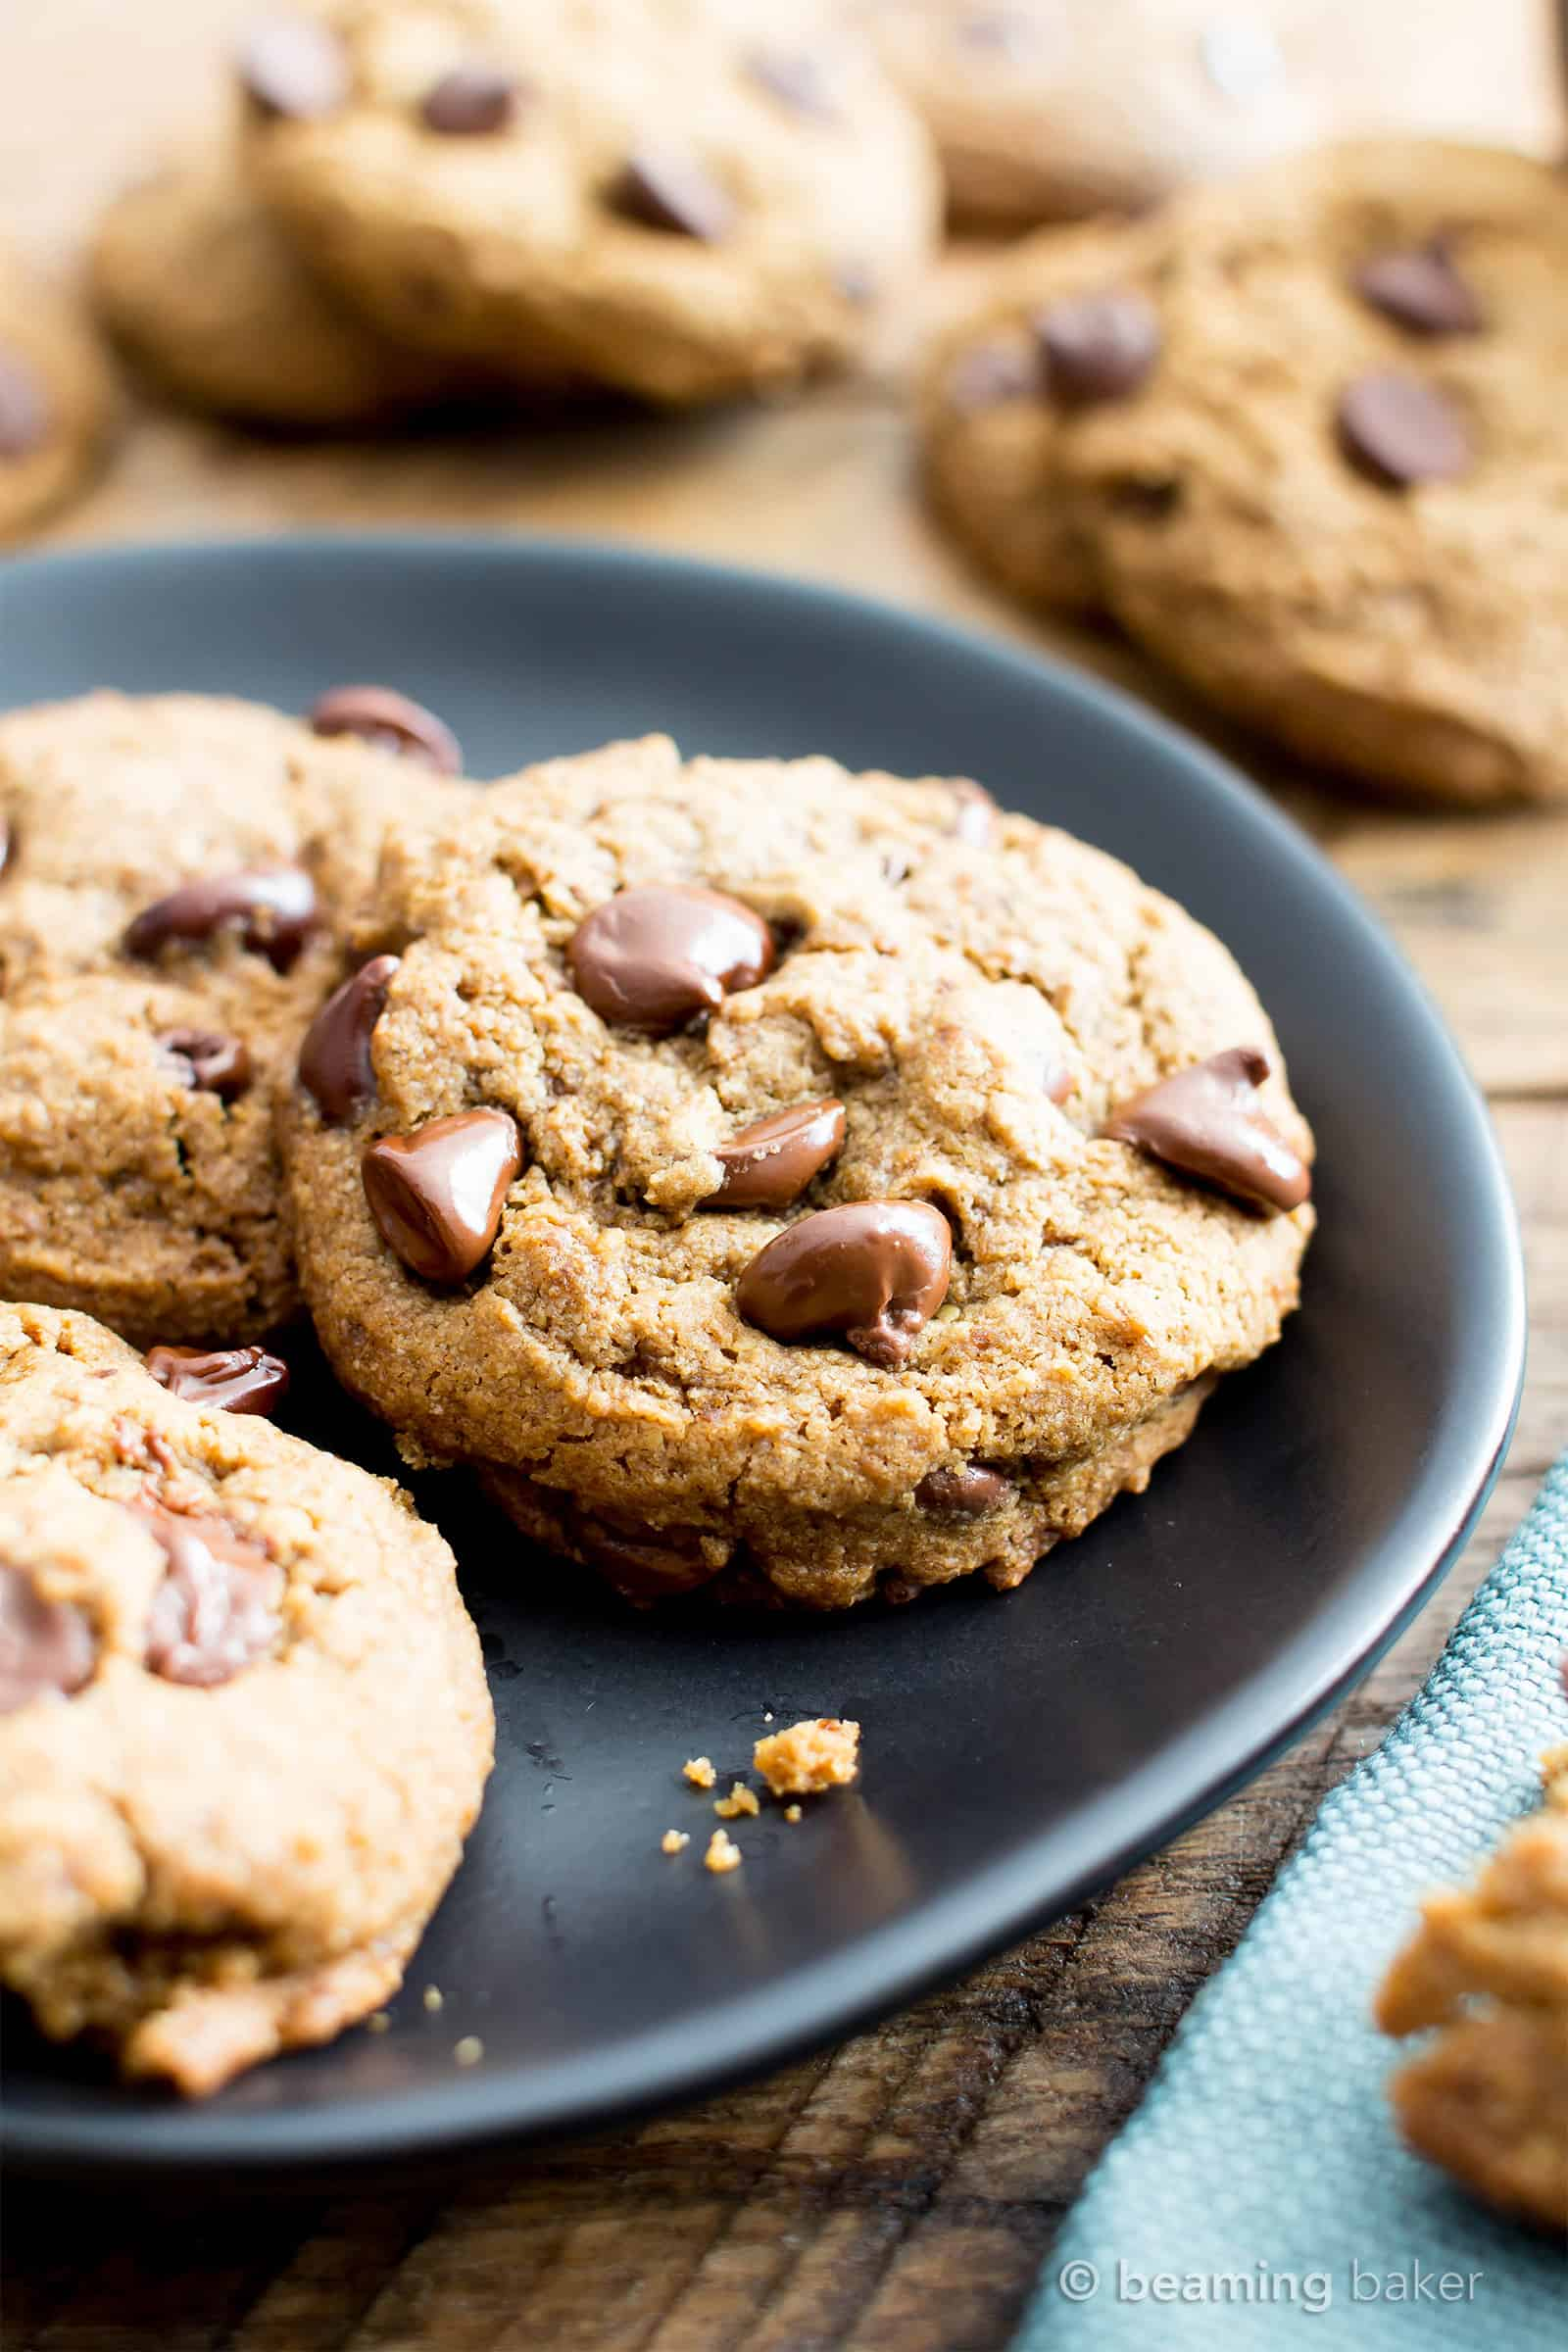 Vegan Chocolate Chip Cookies Recipe (V, GF): Chewy on the inside, crispy on the edges, and packed with rich chocolate. My favorite chocolate chip cookies! #Vegan #GlutenFree #DairyFree #Cookies #Dessert | Recipe on BeamingBaker.com